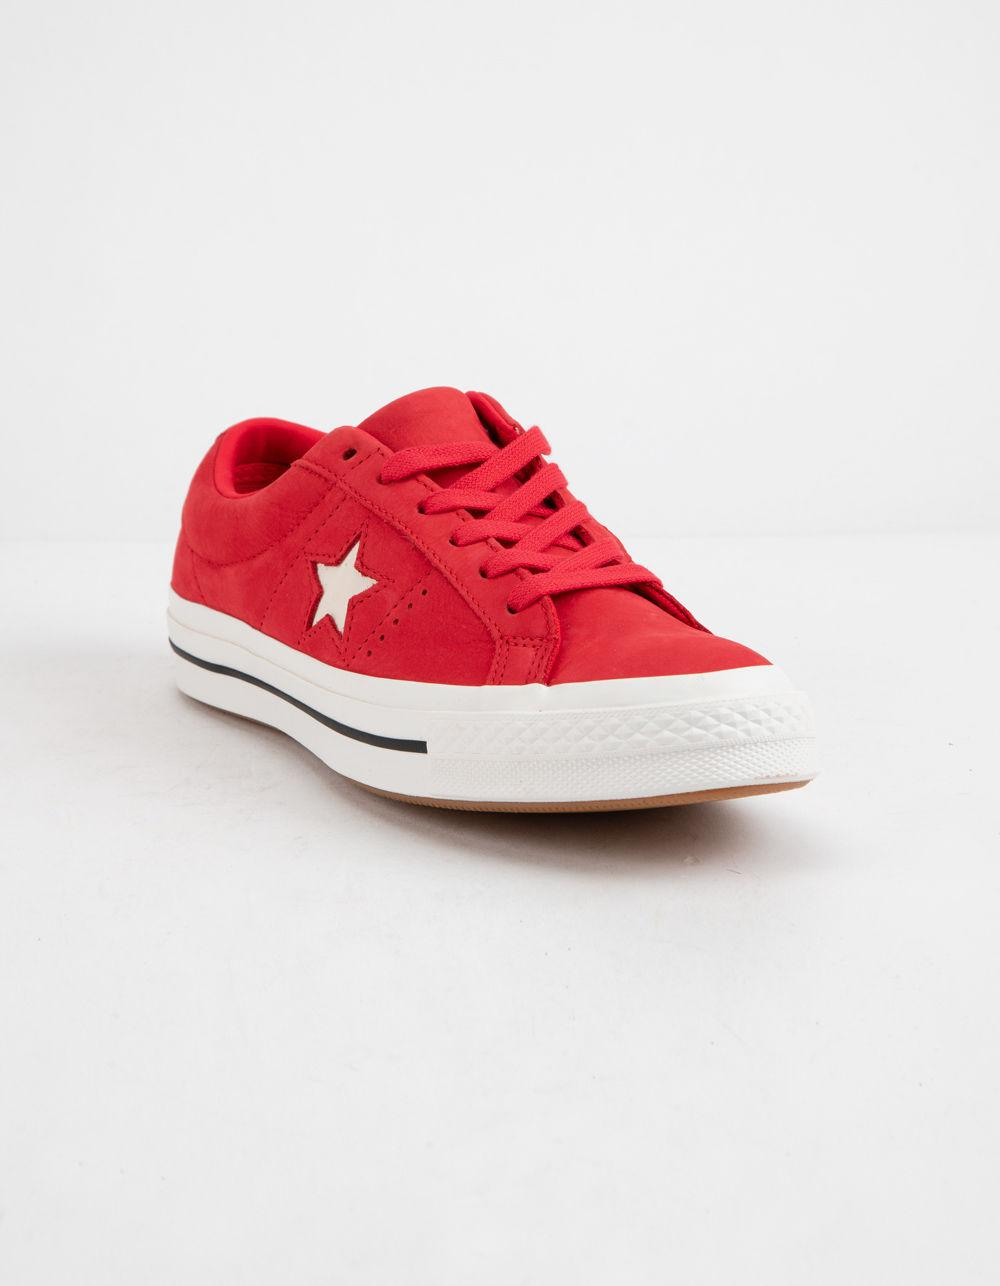 16a55b78e239 Lyst - Converse One Star Ox Cherry Red   Vintage White Womens Low Top Shoes  in Red